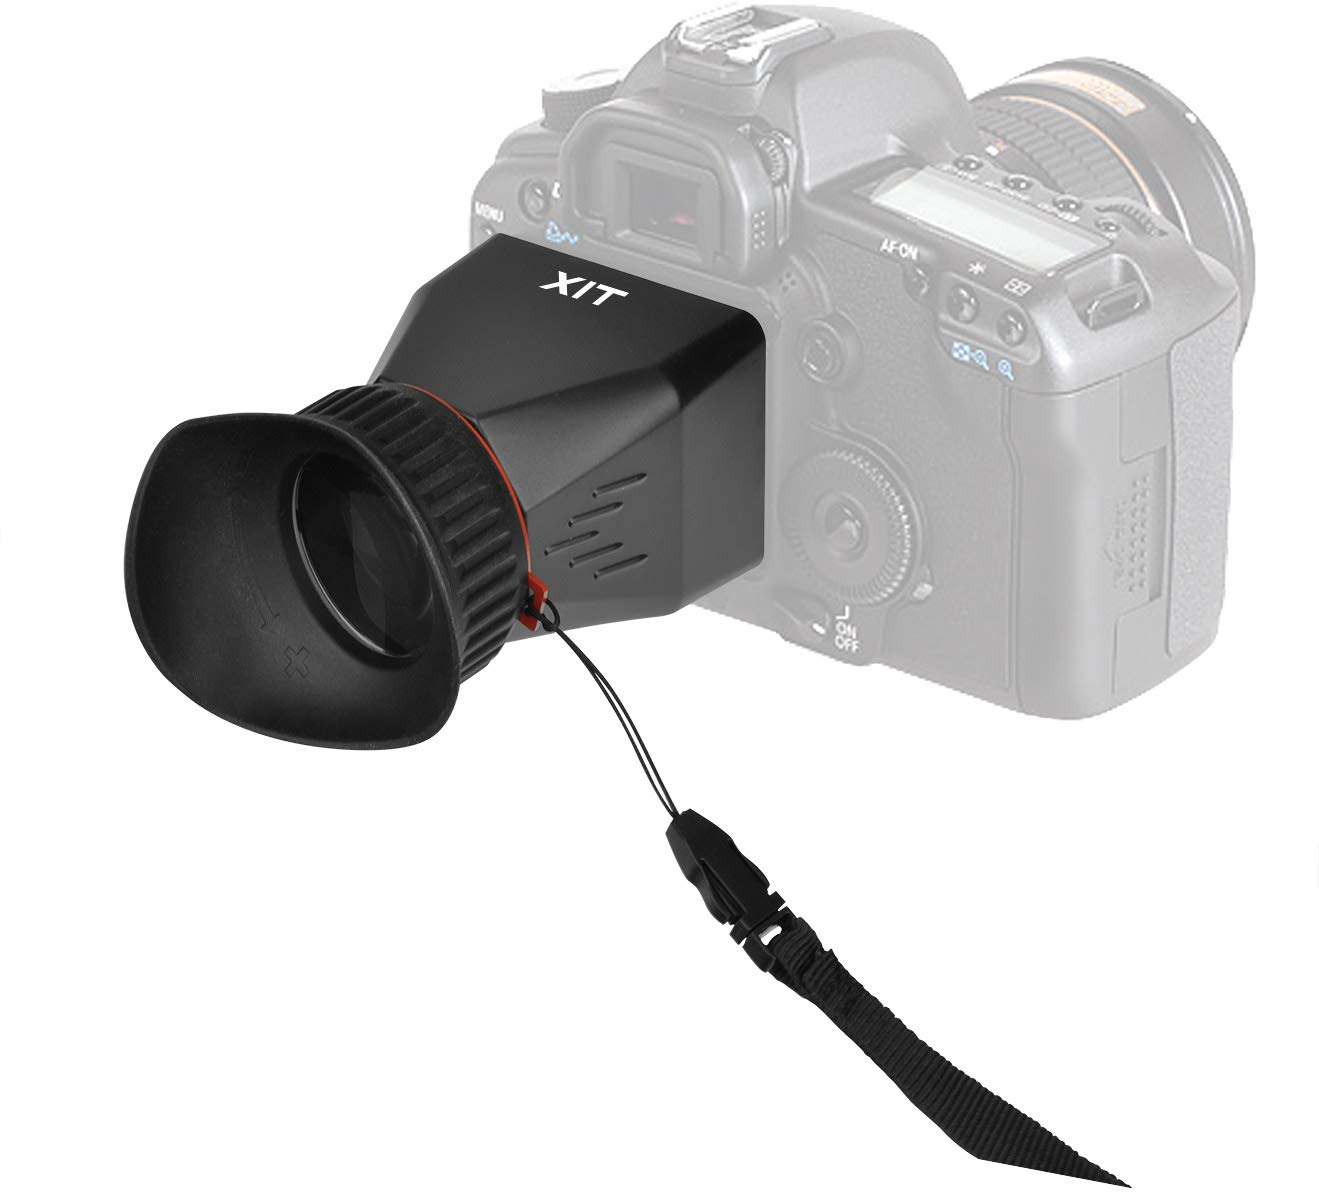 Xit XTLCDMVL Professional Locking LCD Viewfinder with 3.4X Magnification Black